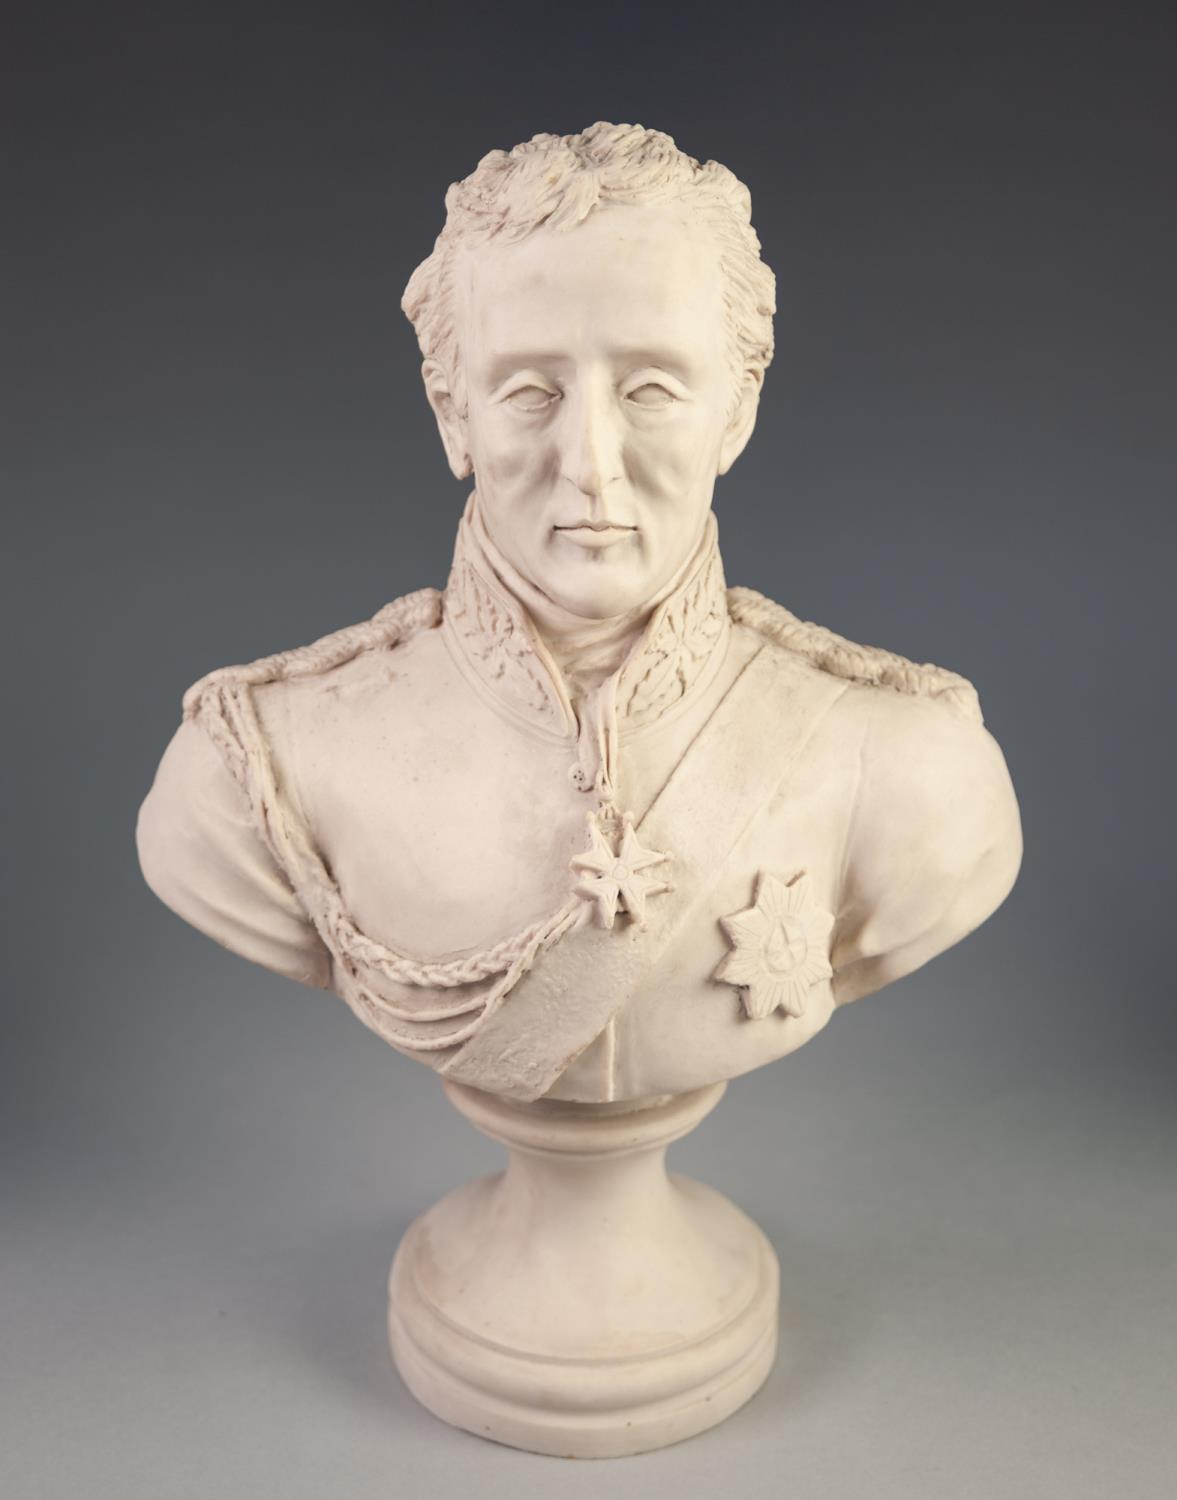 Lot 243 - RECONSTITUTED MARBLE BUST OF THE DUKE OF WELLINGTON in military/ceremonial attire raise on a waisted